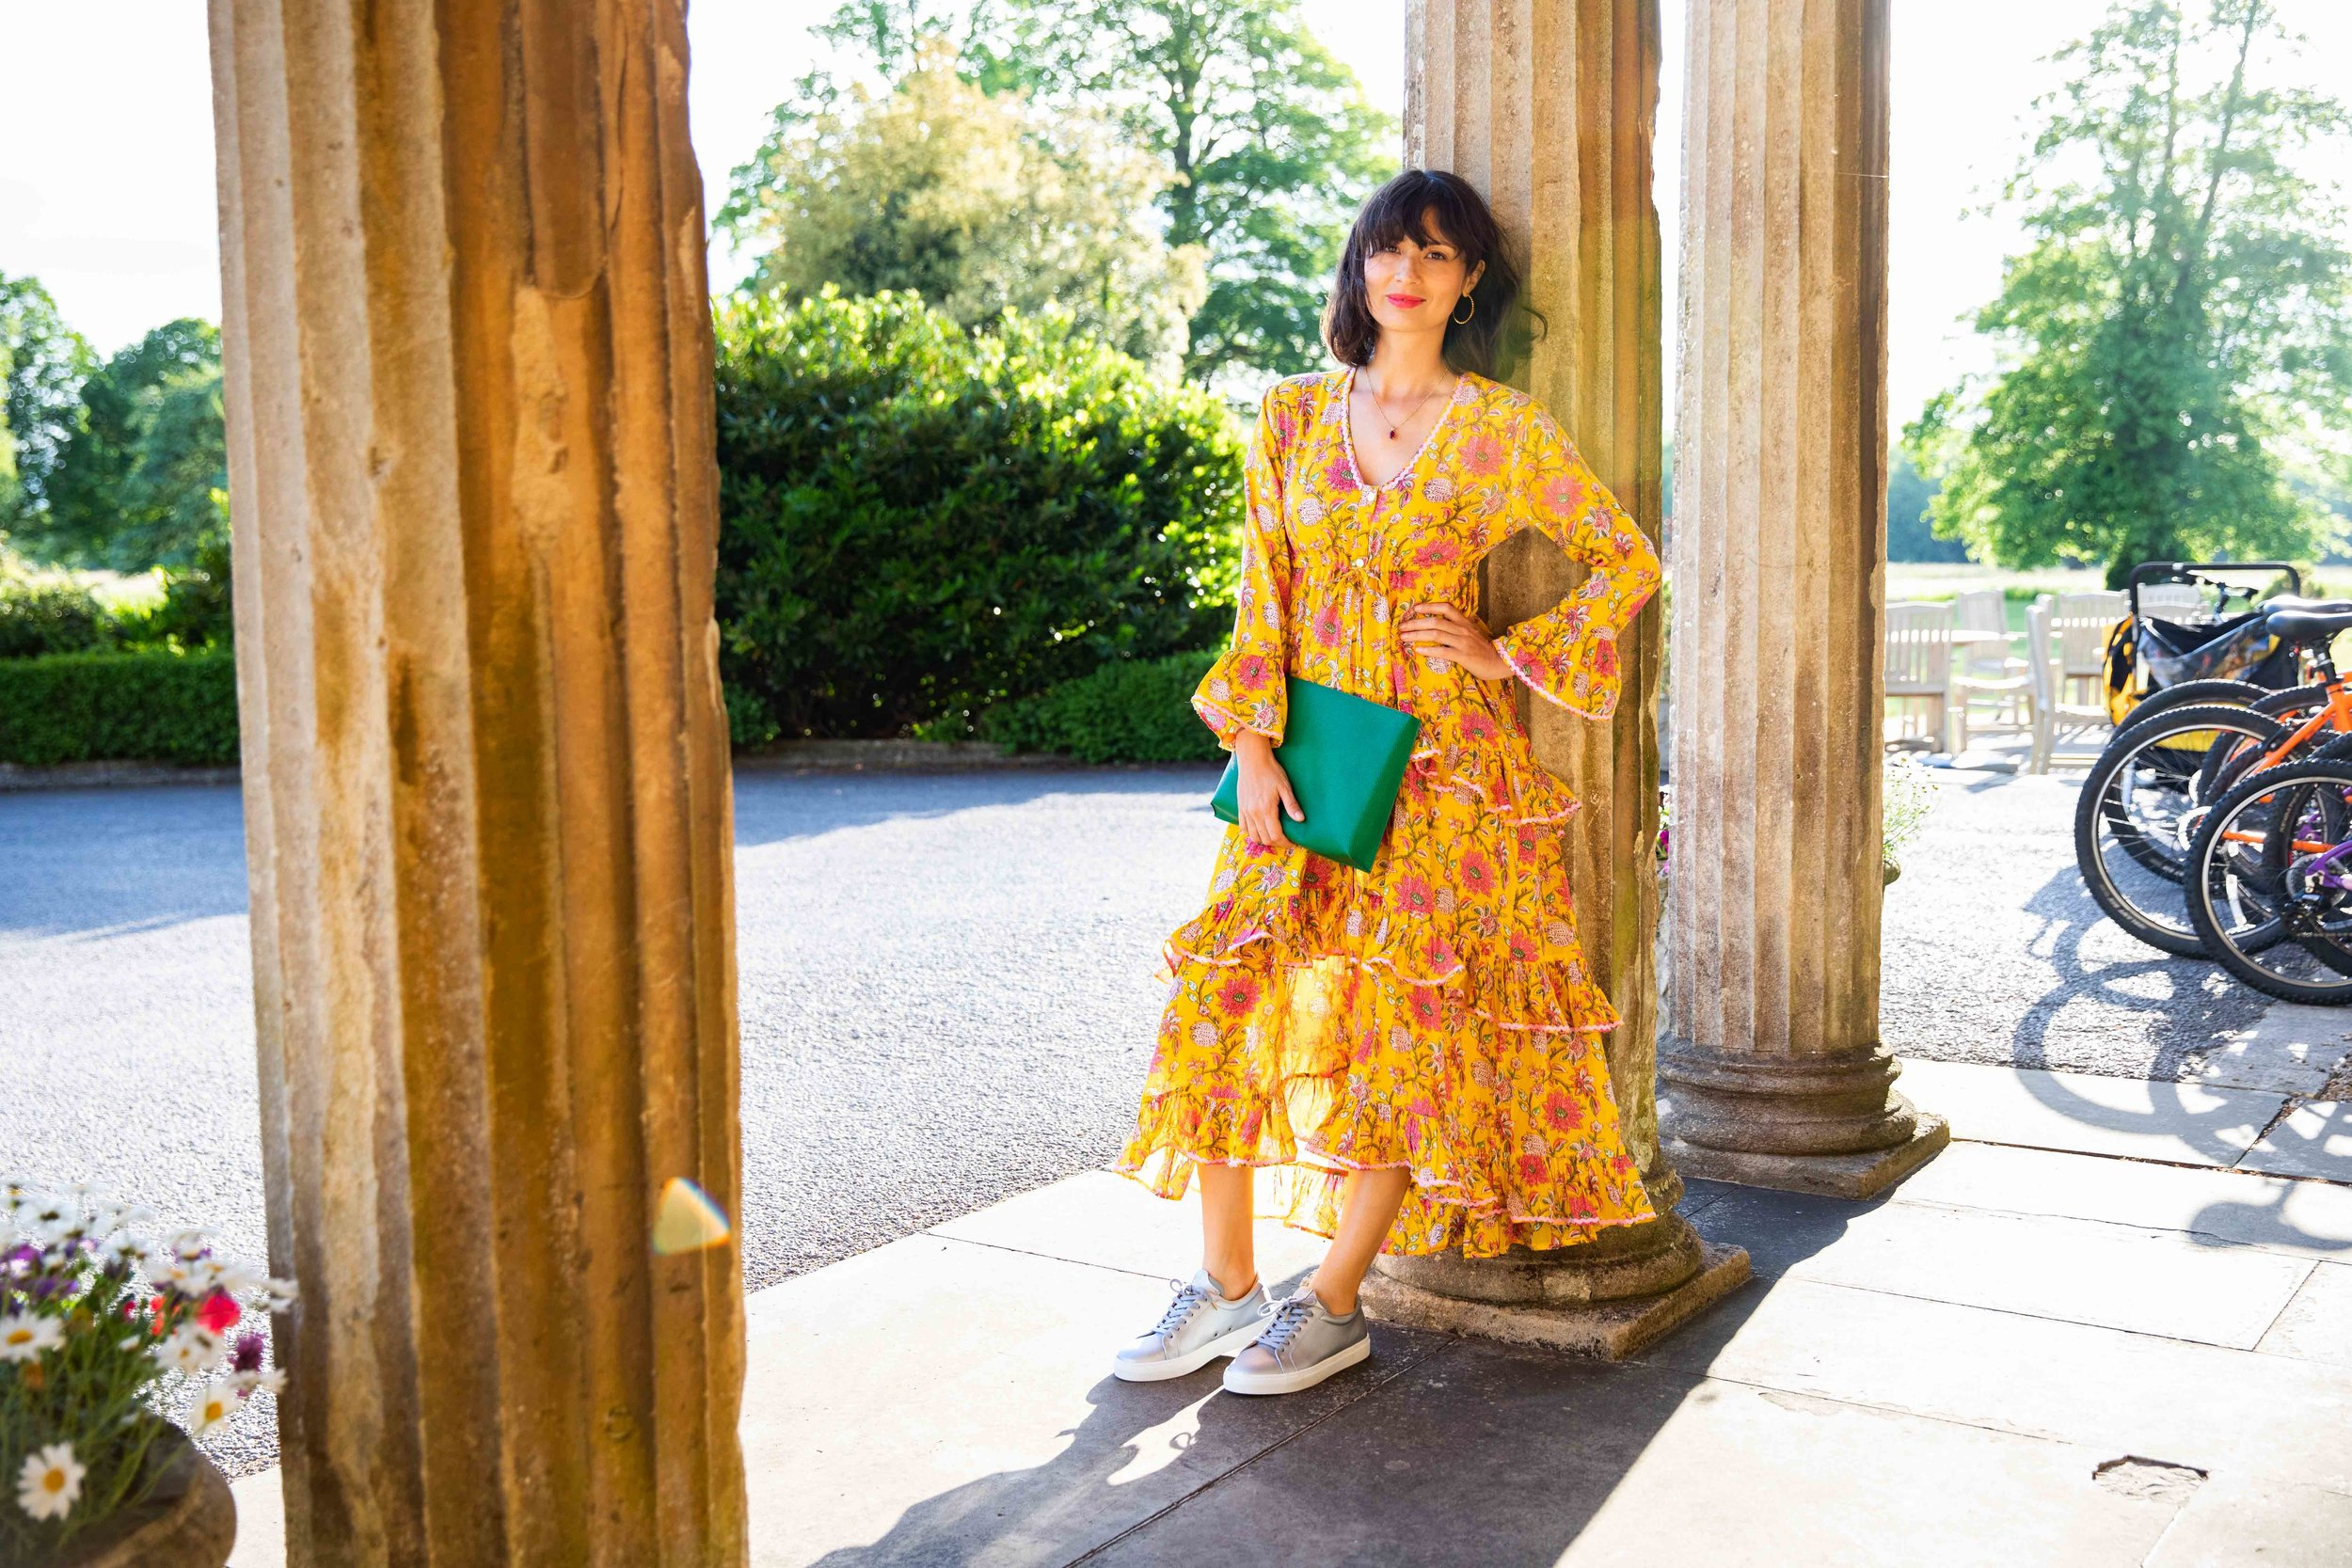 JasmineHemsley__FashionWithFeeling_NickHopperPhotography_2019-0961 (2).jpg